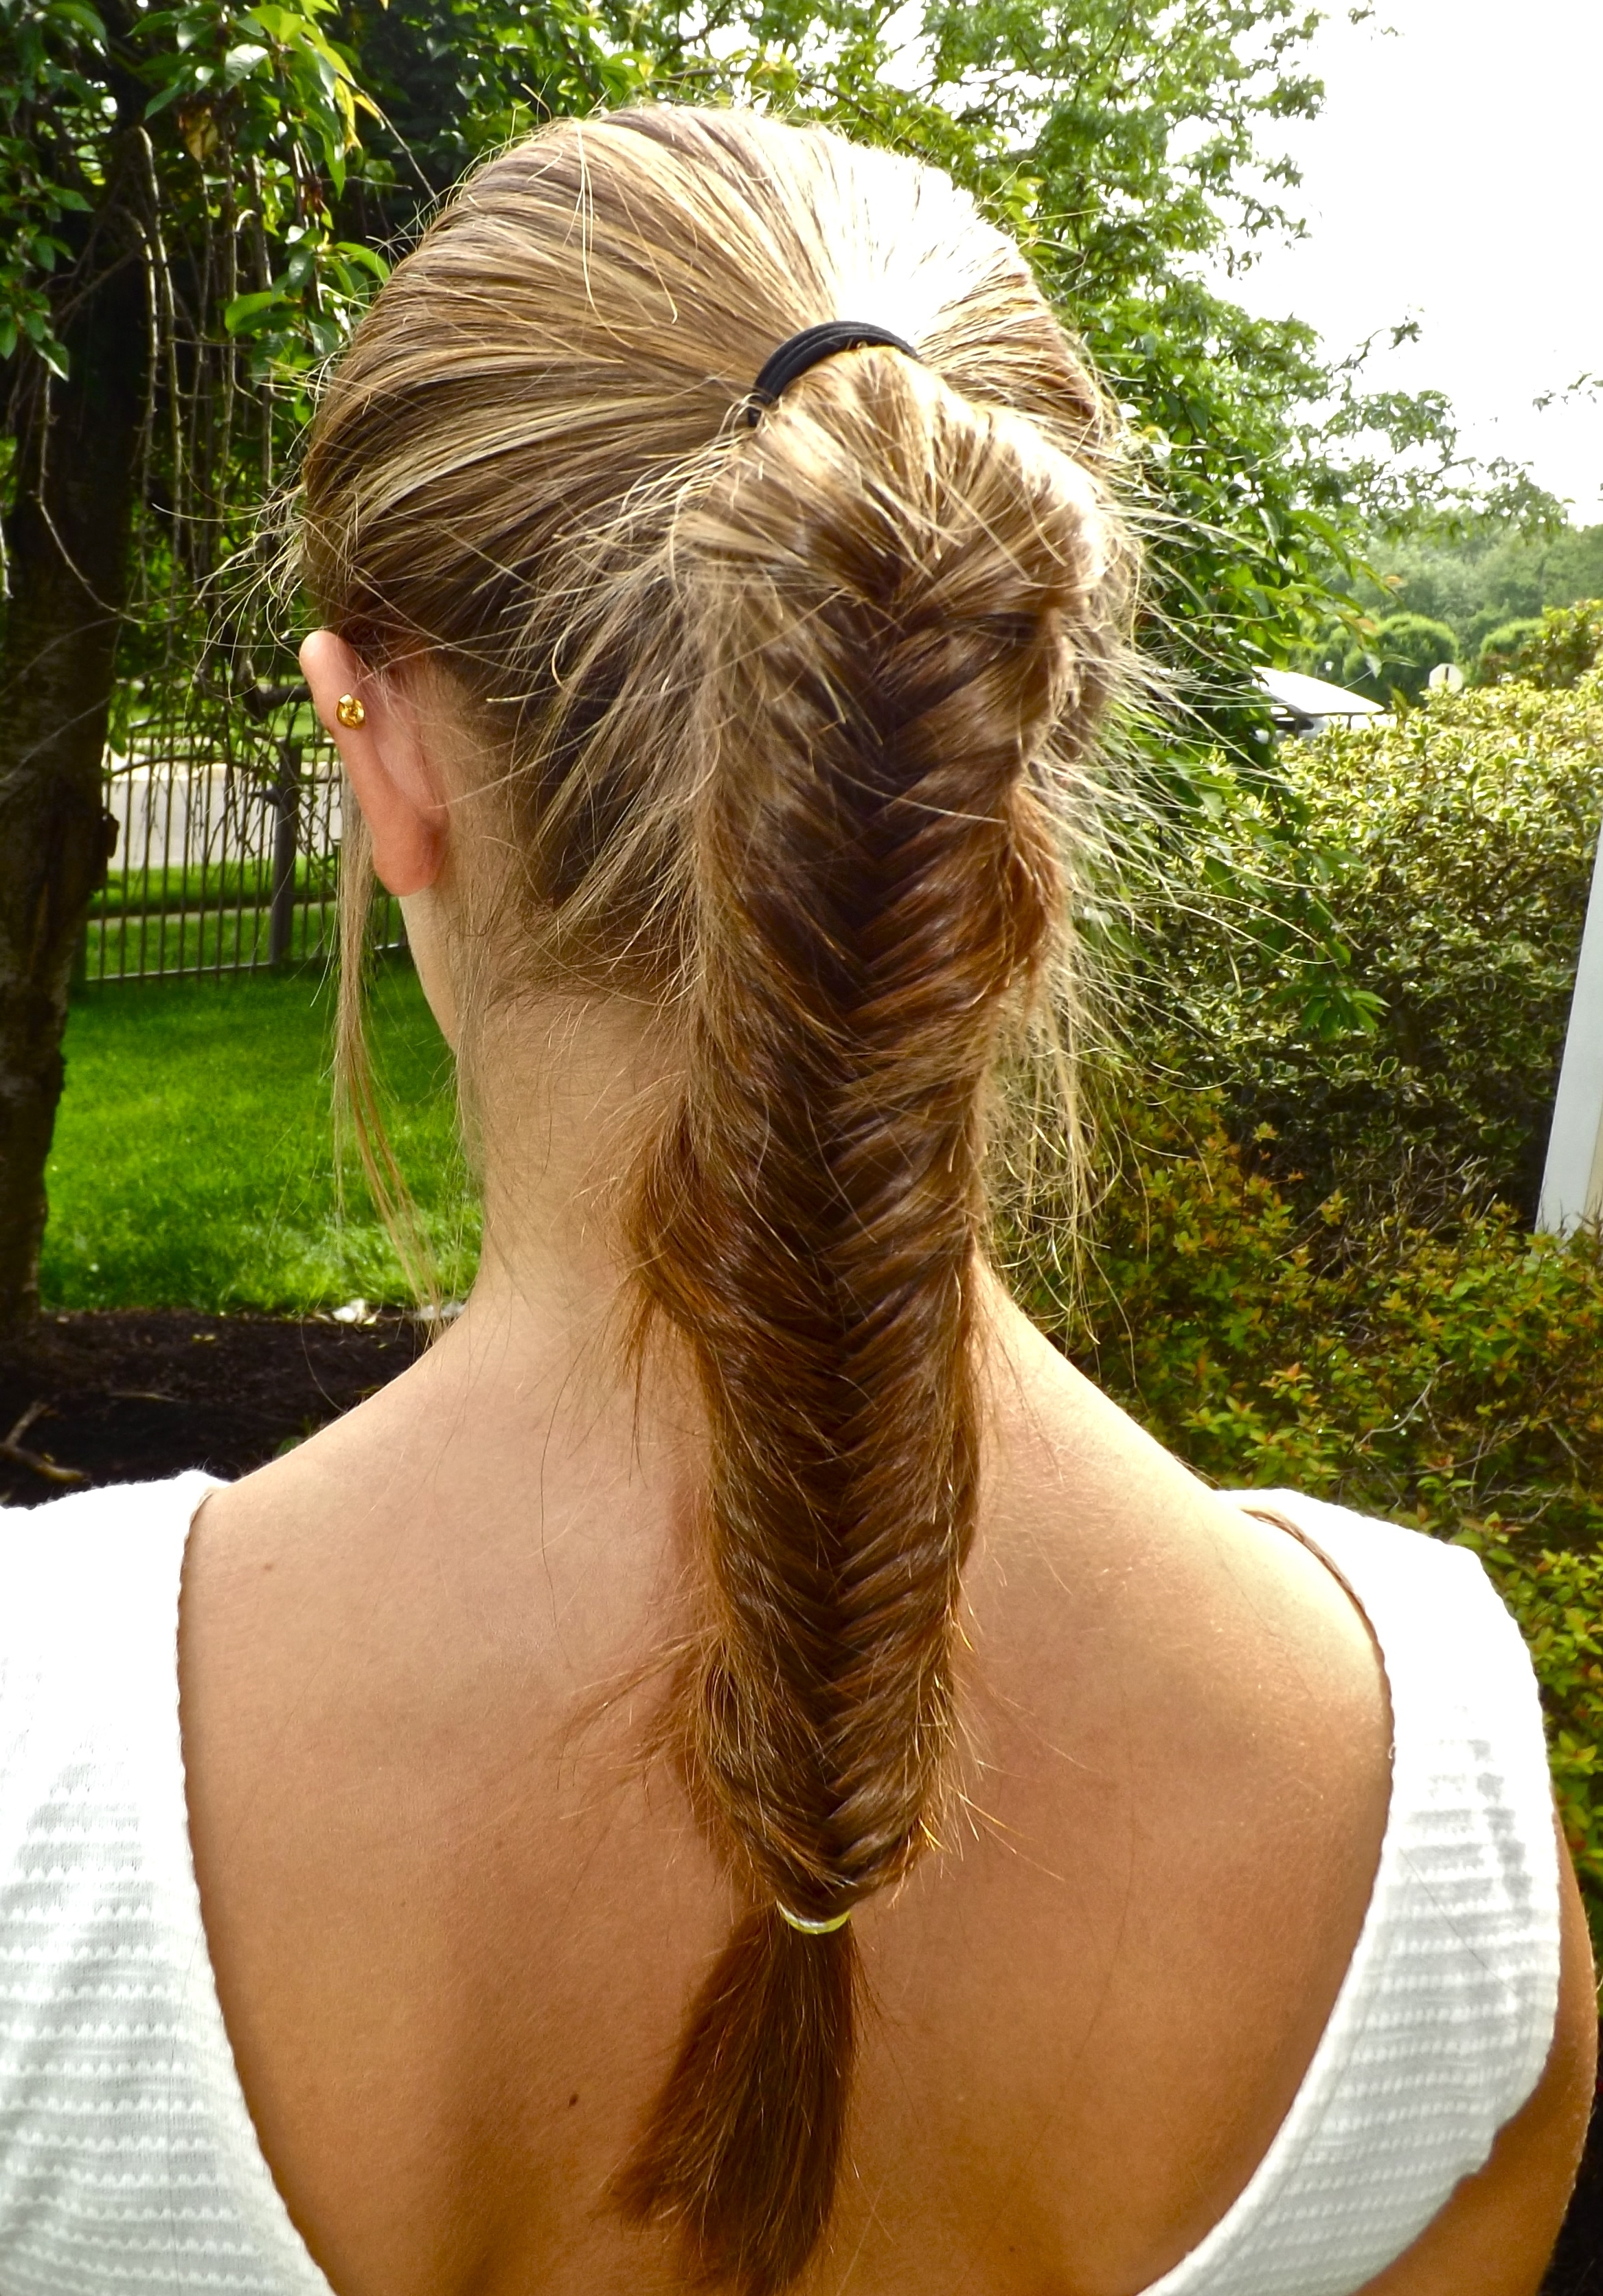 Favorite Fishtail Braid Ponytails For Out With The Old, In With The New: The Fishtail Braid (View 11 of 20)